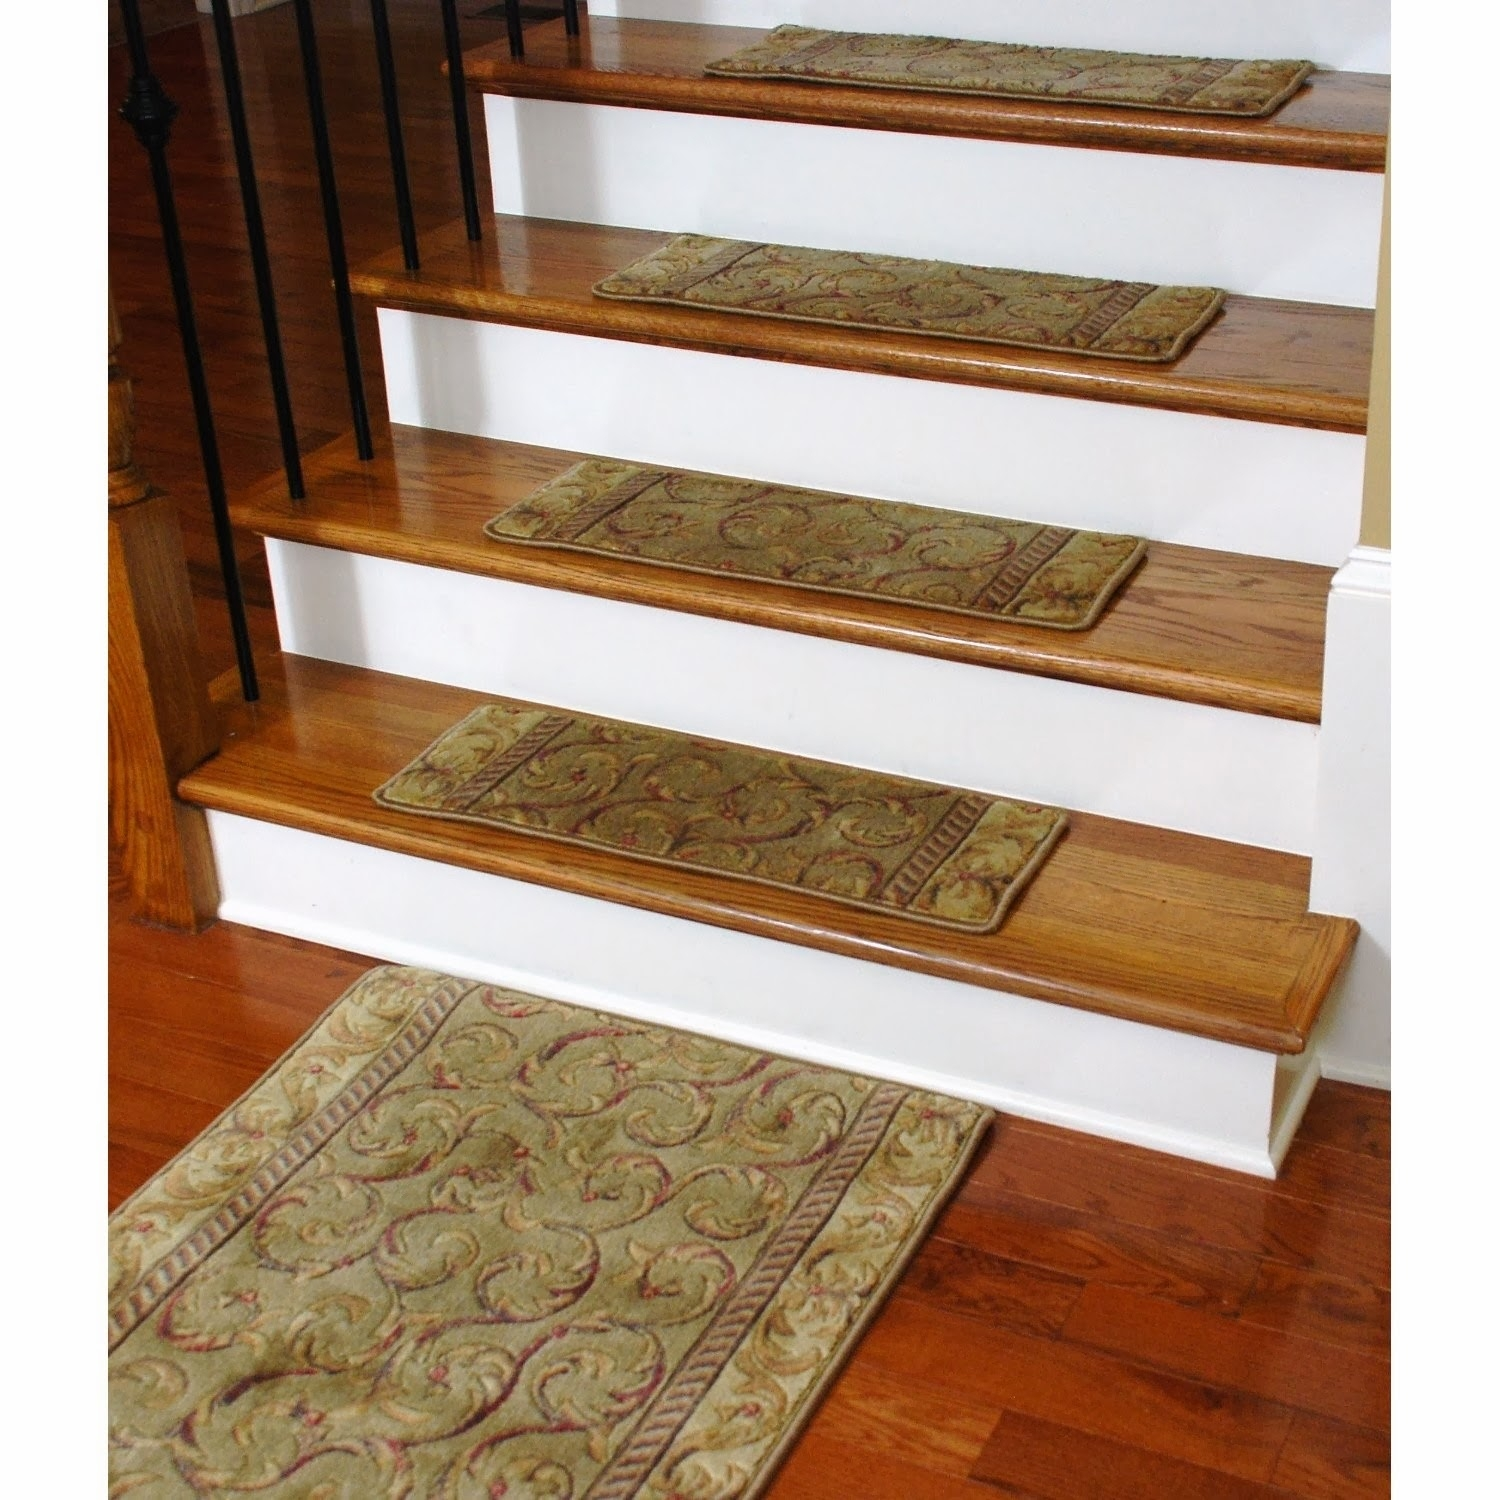 54 Stair Carpet Protectors Protector Carpets Inspirations Vinyl Within Stair Tread Carpet Protectors (Photo 1 of 15)